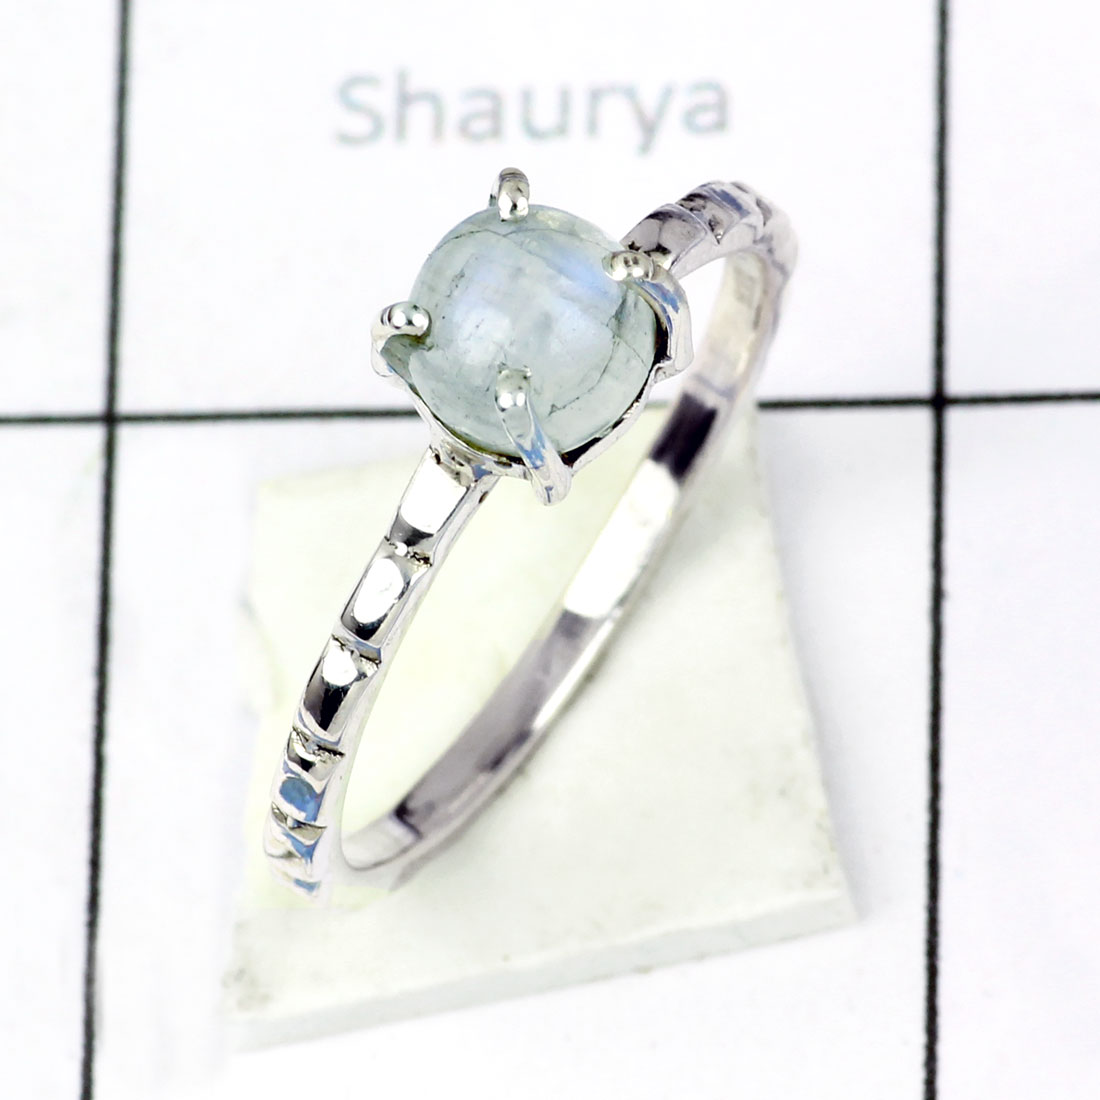 RAINBOW MOONSTONE C - BDR956- EXCLUSIVE NEW COLLECTION OF RAINBOW MOONSTONE RINGS MADE